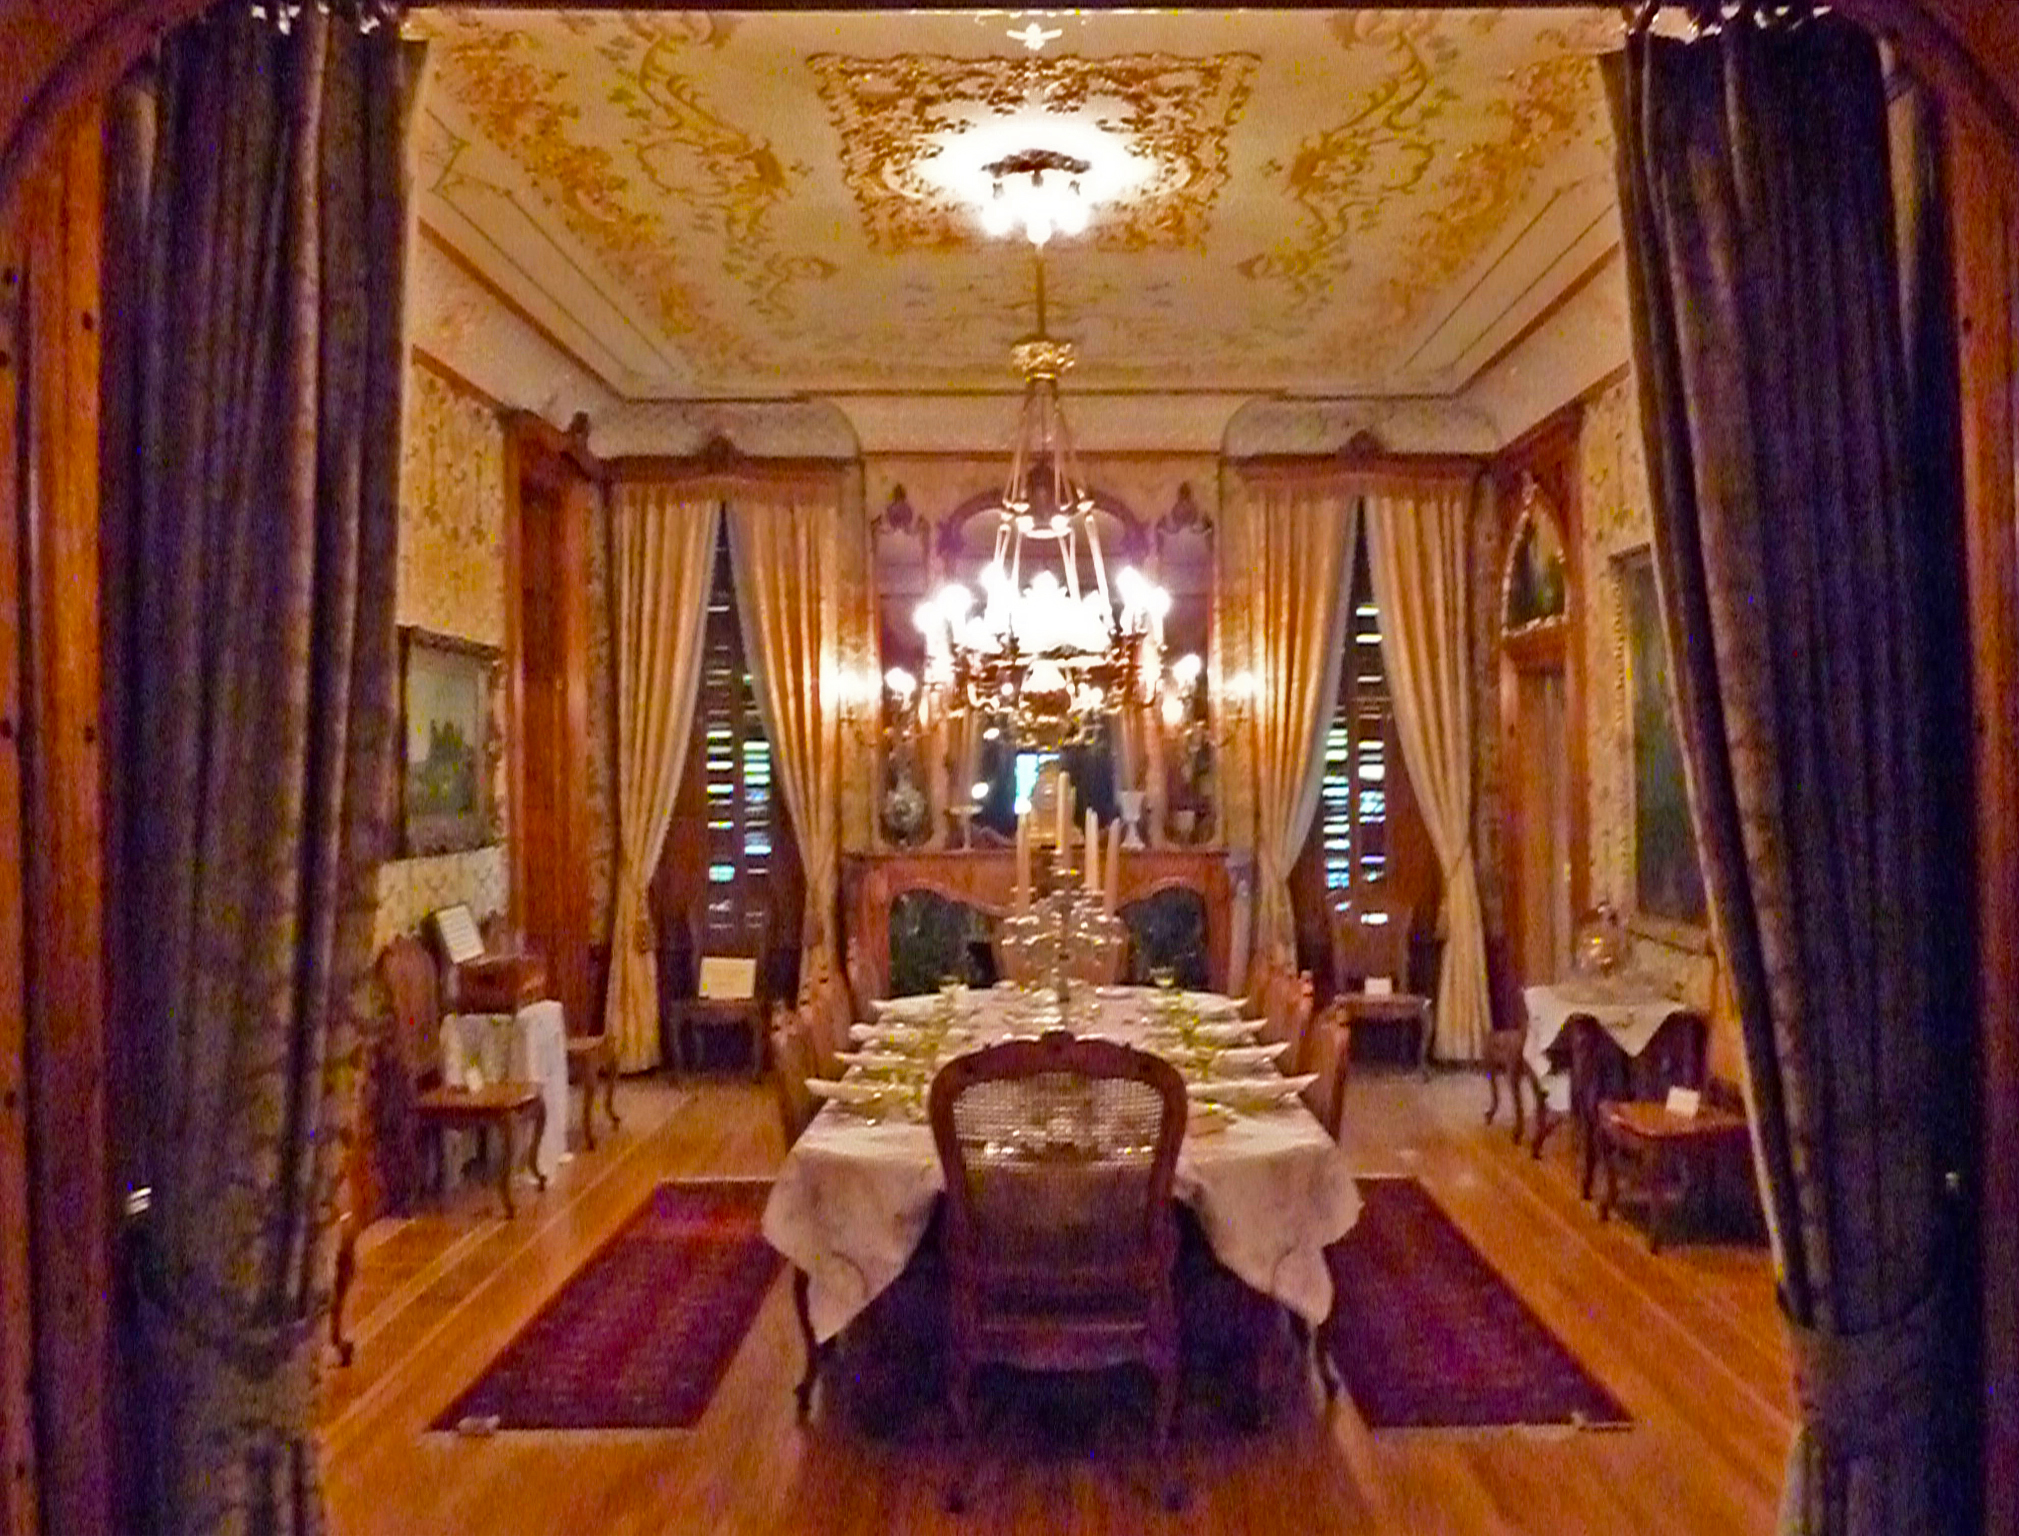 Remarkable Pabst Mansion Dining Room 2019 x 1536 · 2350 kB · jpeg